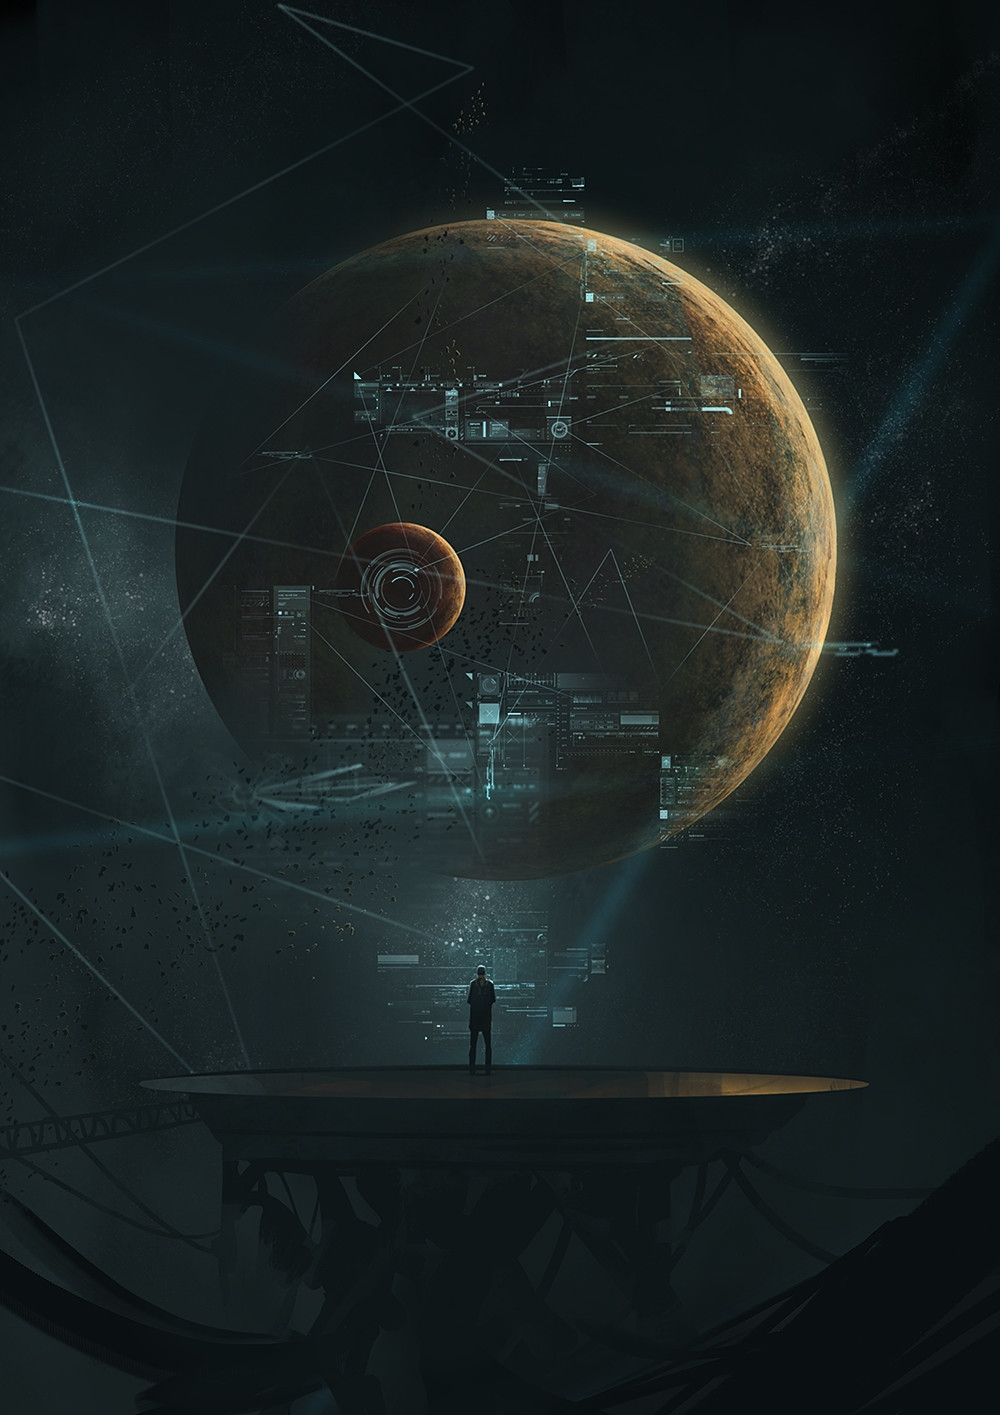 Science Fiction Art: Command Deck, by Krystian Biskup